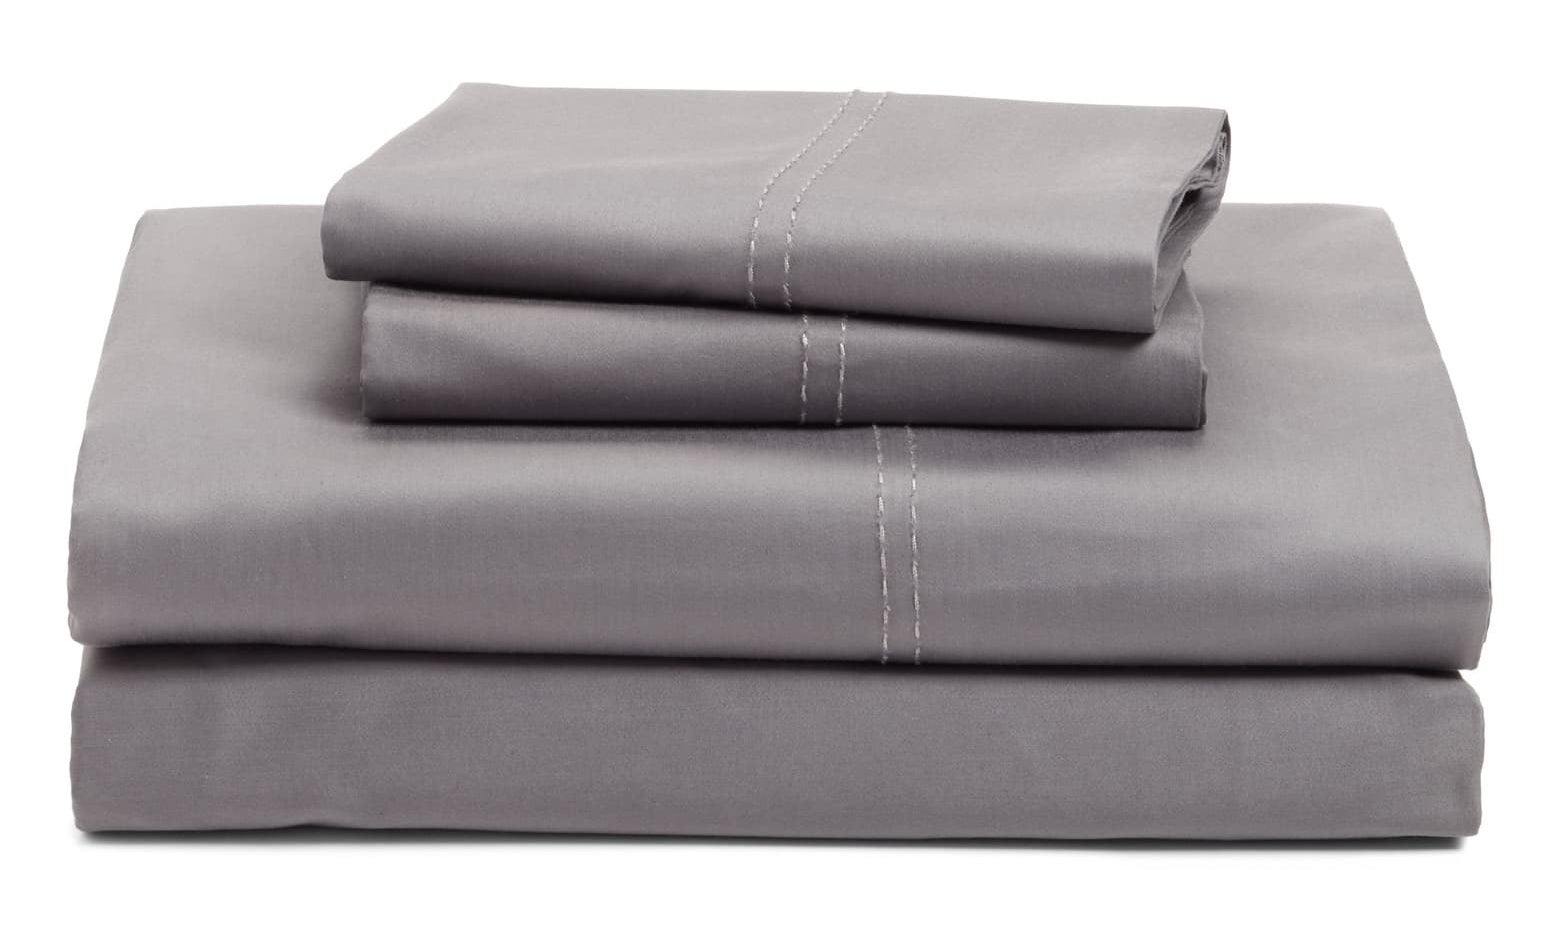 The sheets in grey folded with pillowcases folded on top